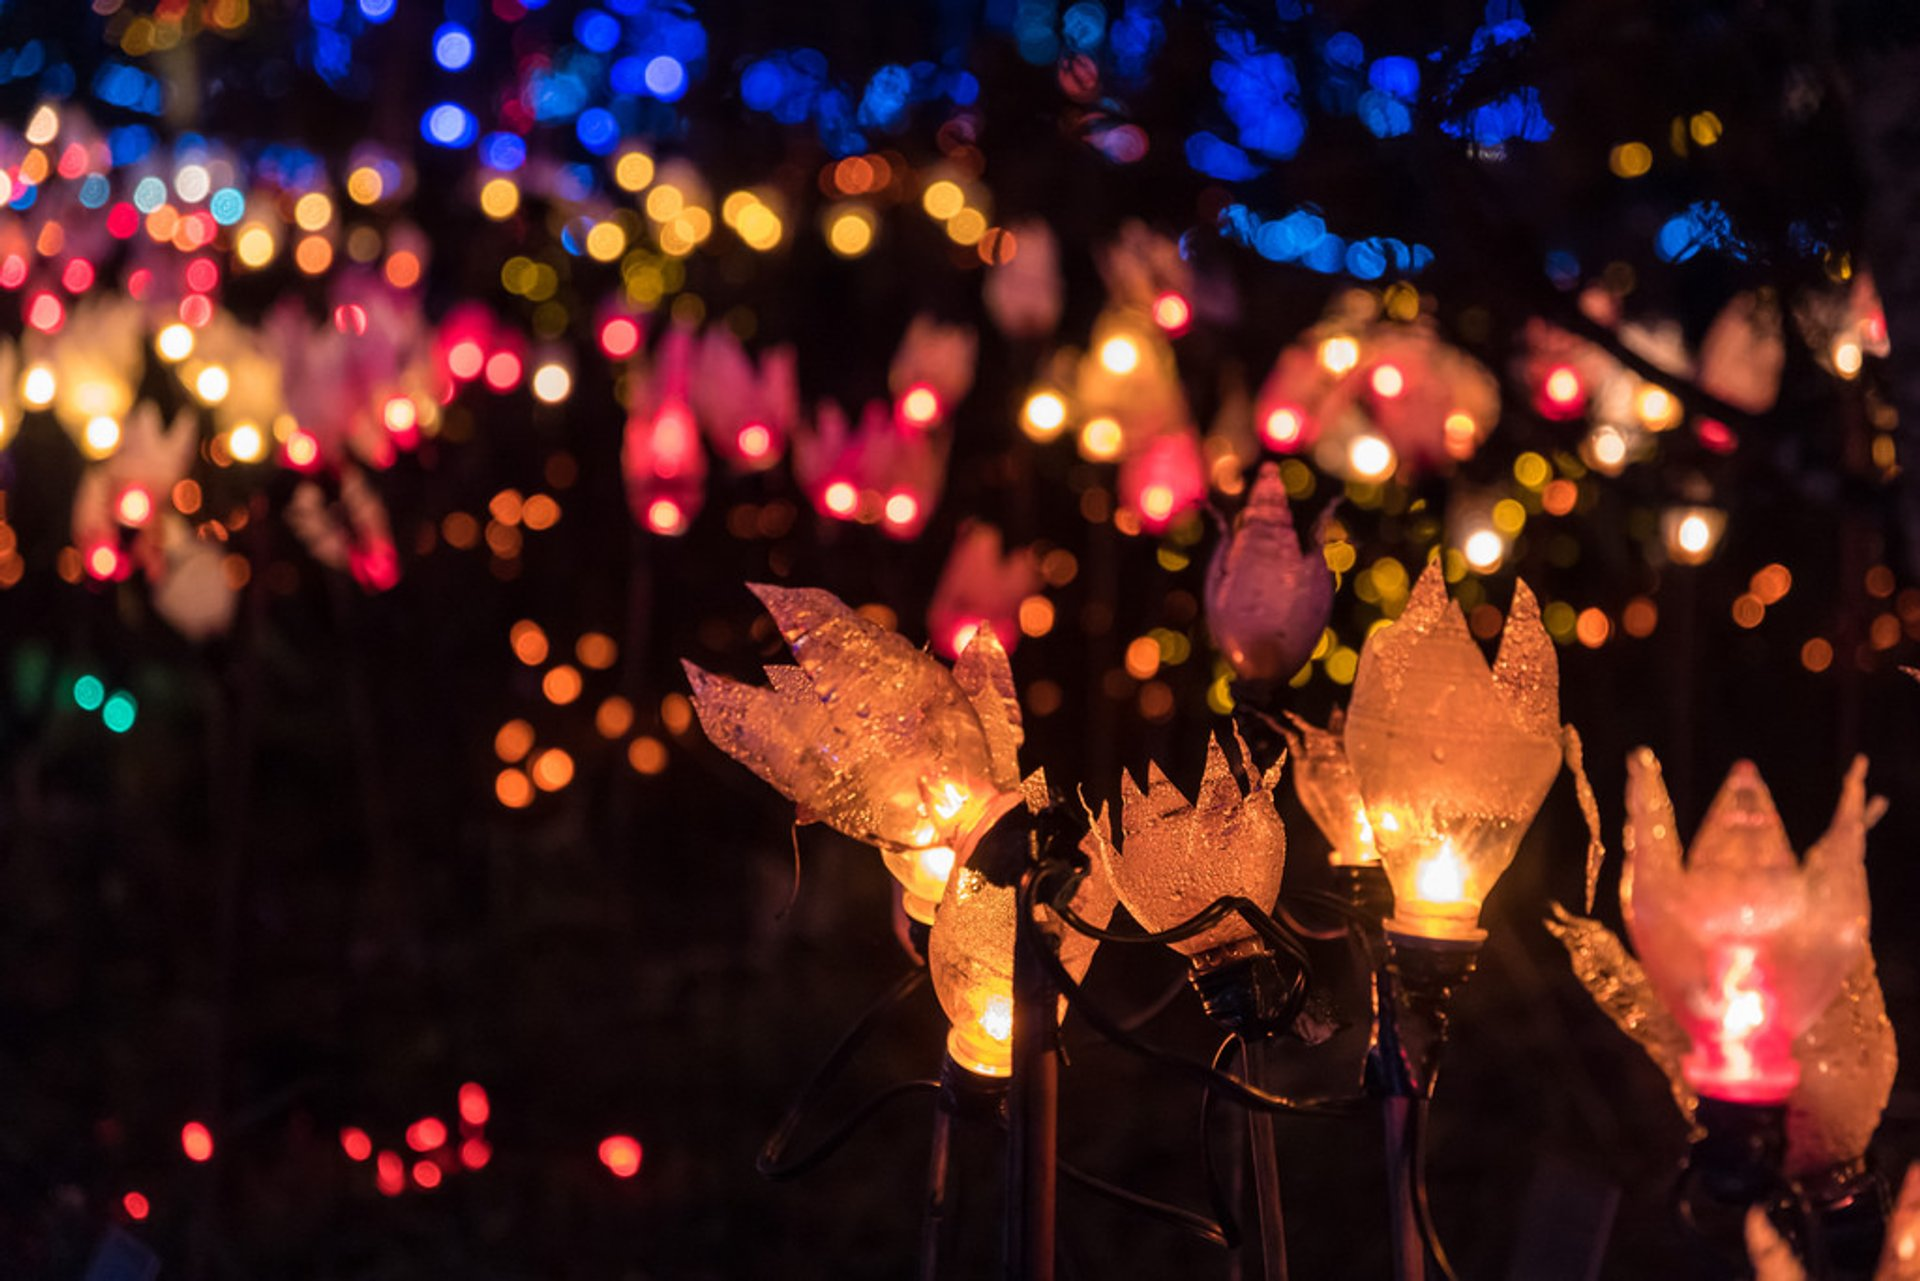 VanDusen Festival of Lights in Vancouver 2020 - Best Time